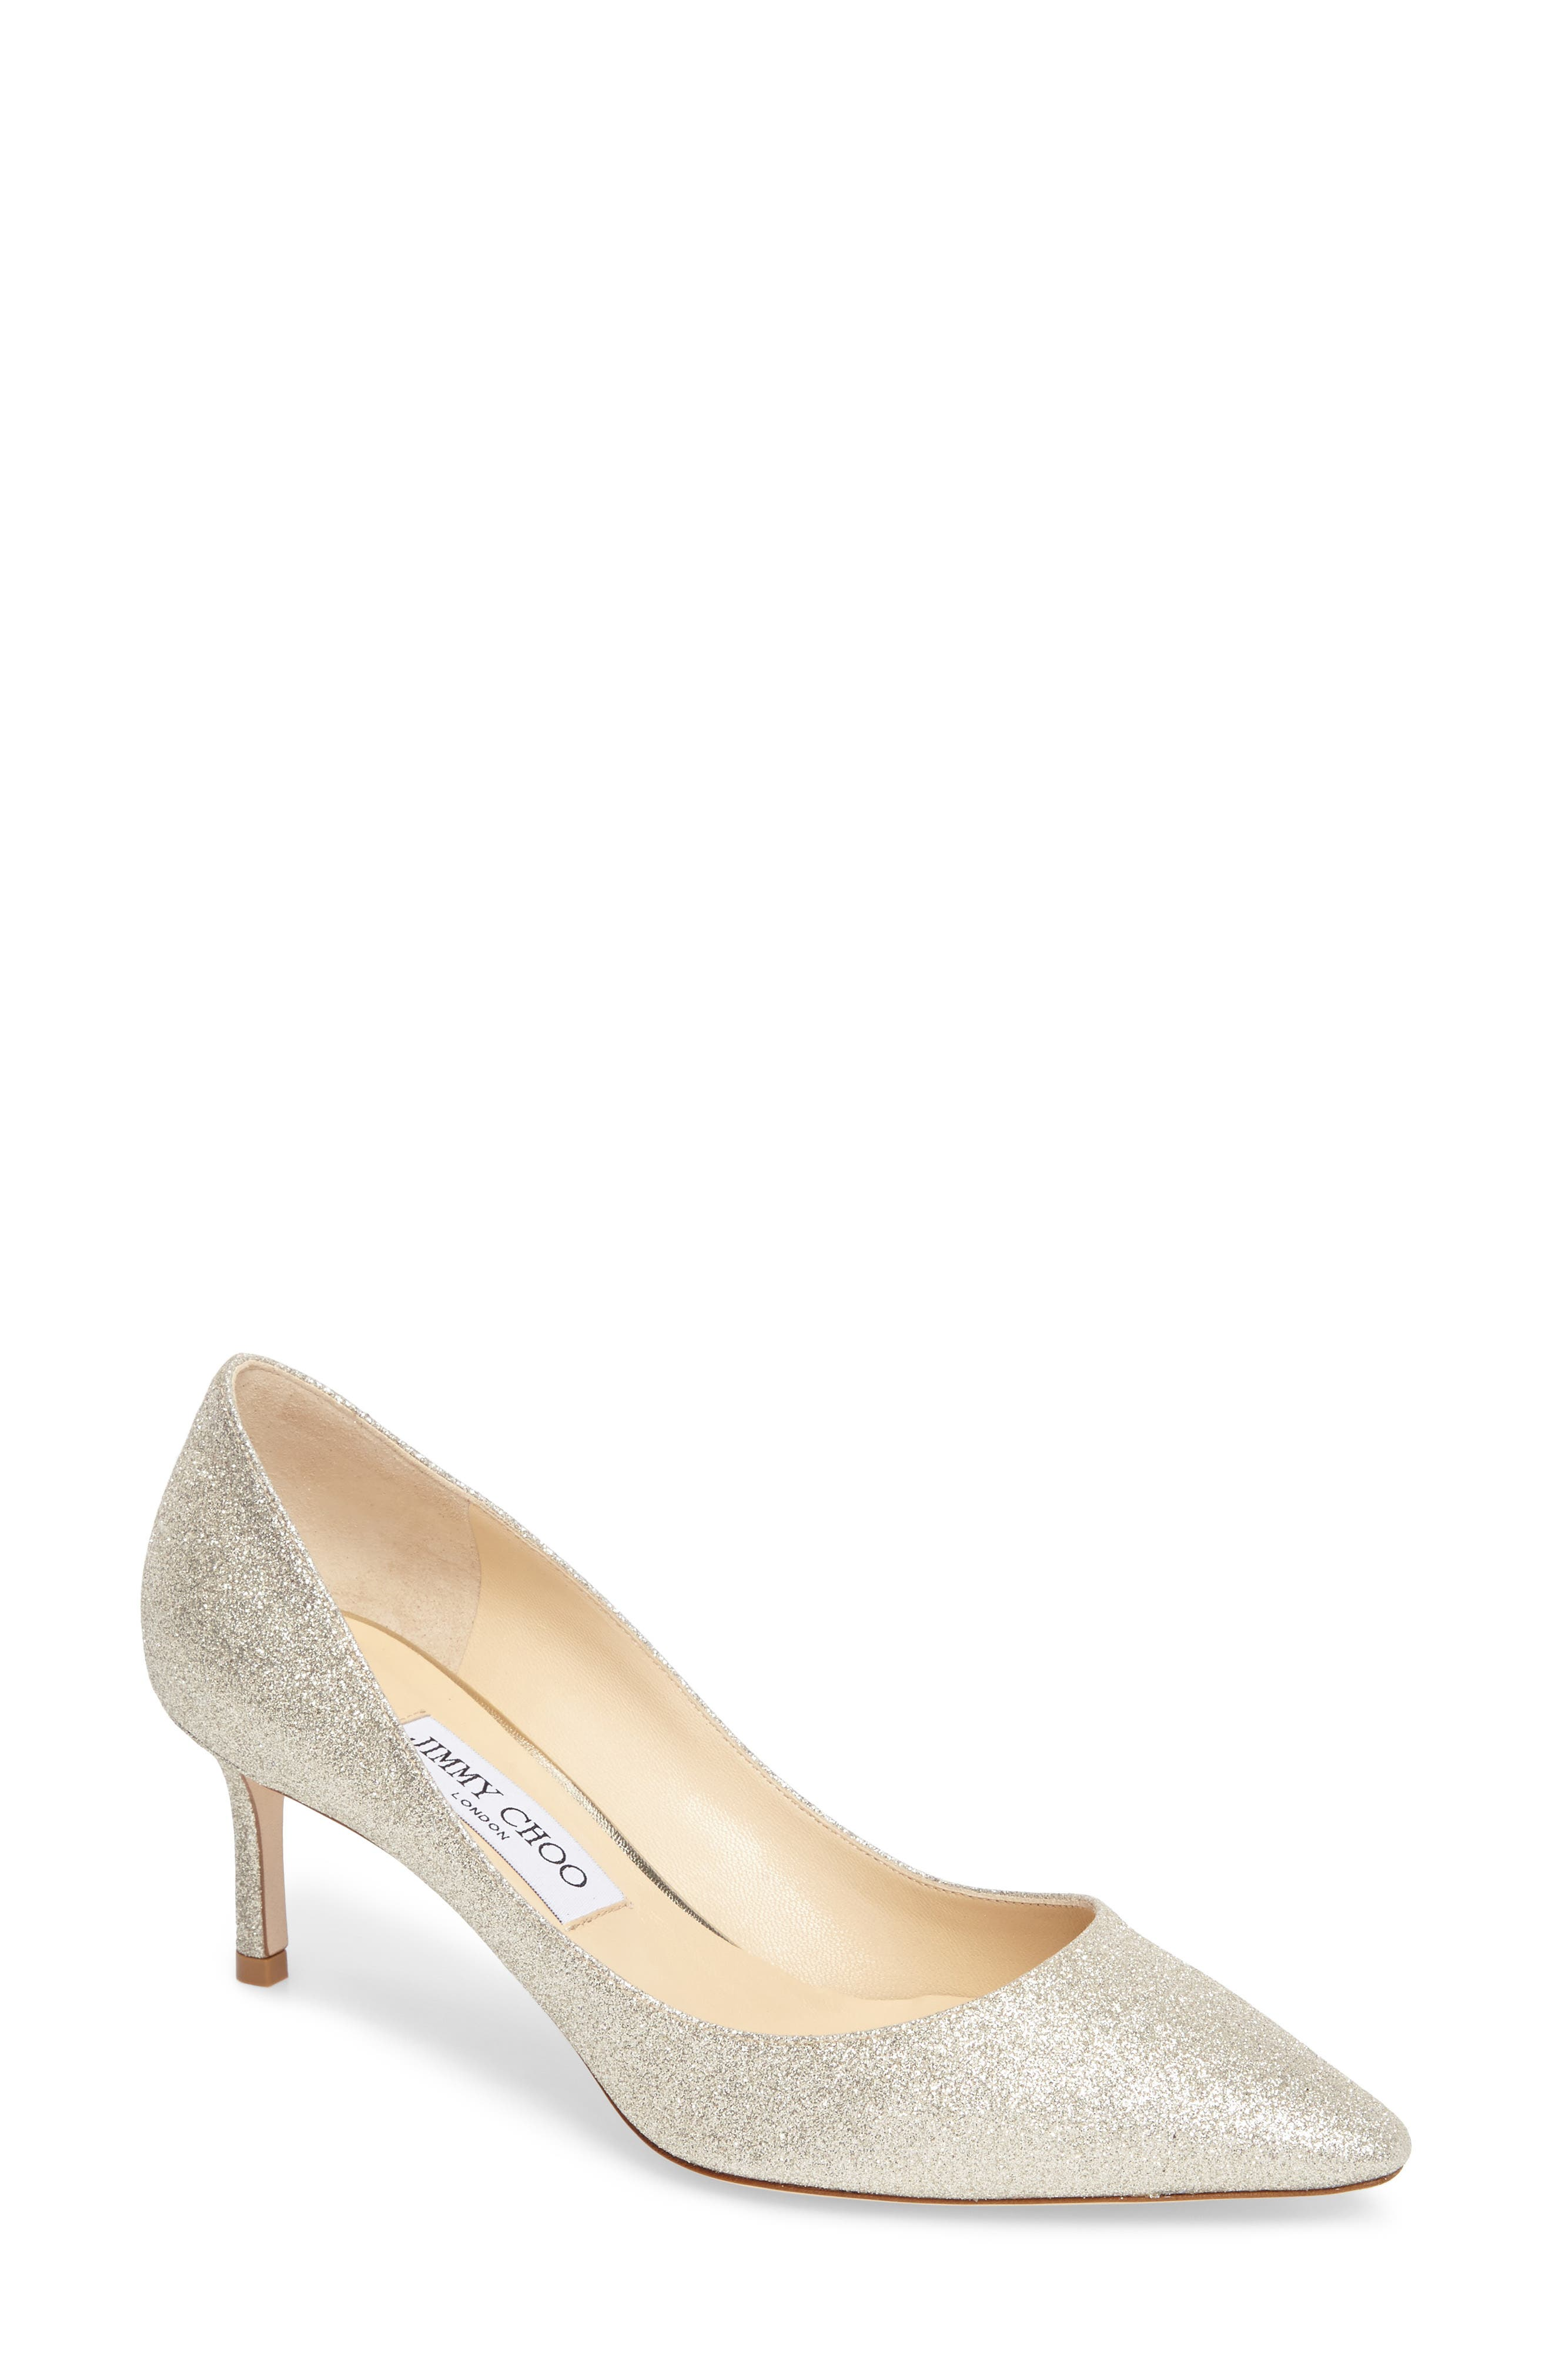 Alternate Image 1 Selected - Jimmy Choo Romy Glitter Pump (Women)